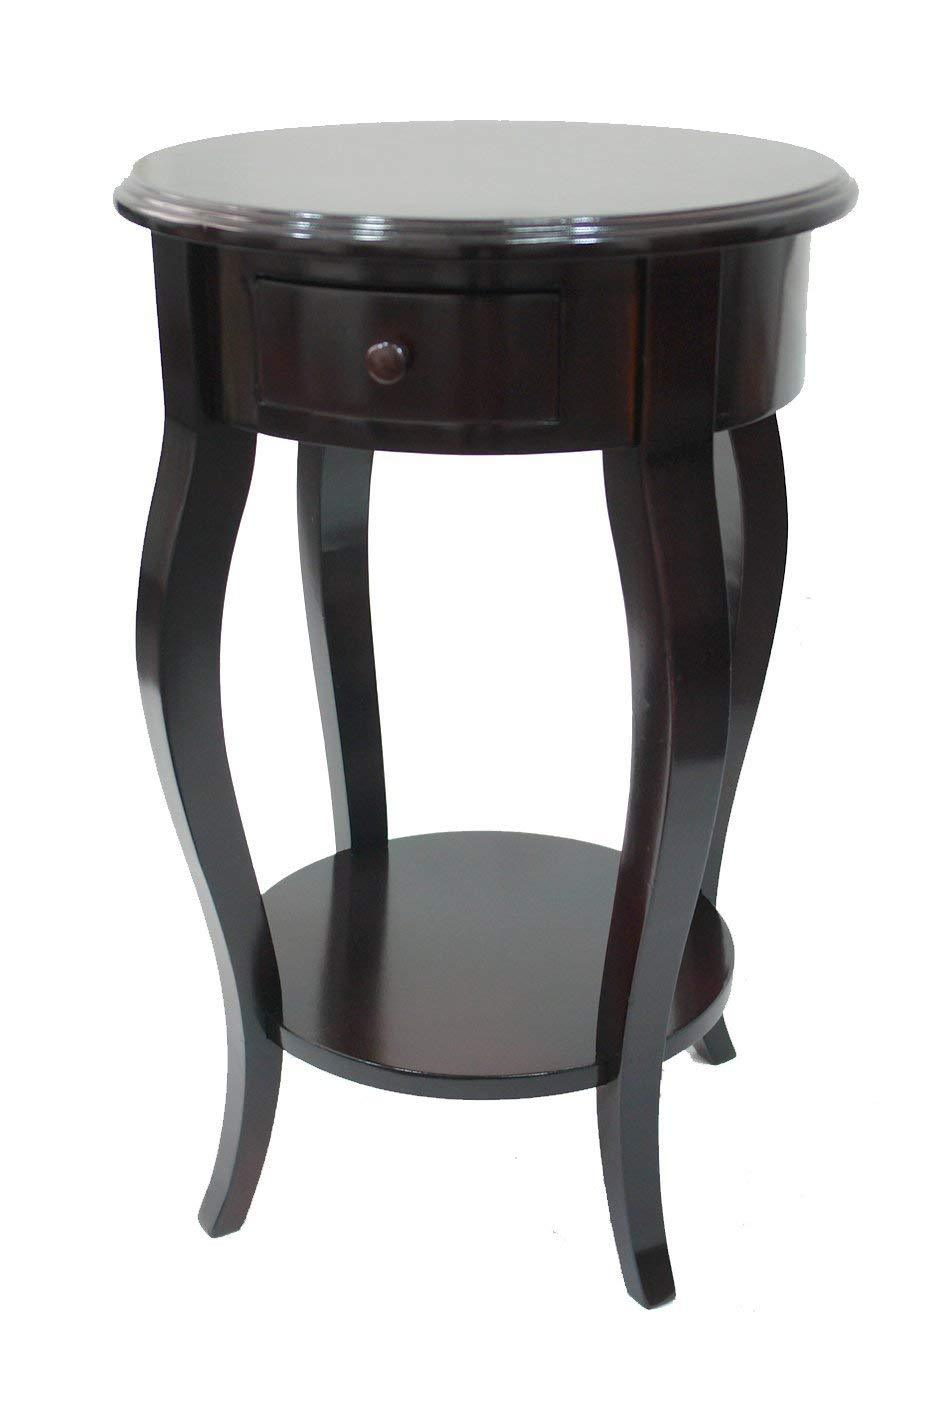 urbanest round accent side table dark brown keffl tables red lamps for living room homemade coffee plans white outdoor knotty pine kitchen pottery barn farm tablecloth pallet sofa